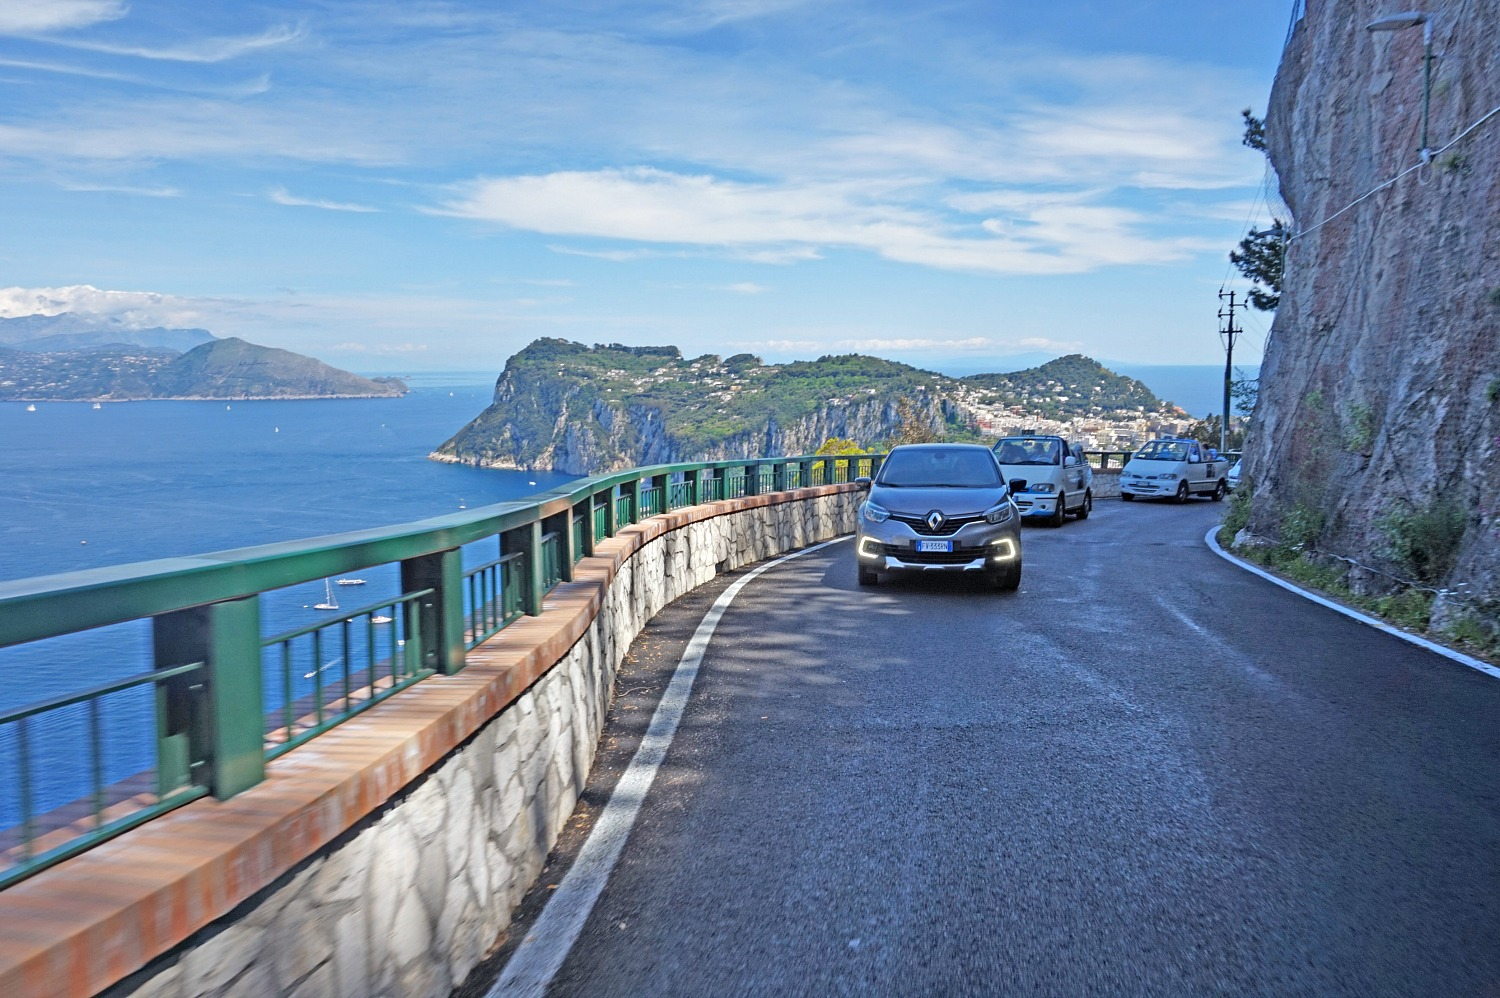 Drive along the coast in Capri Italy.